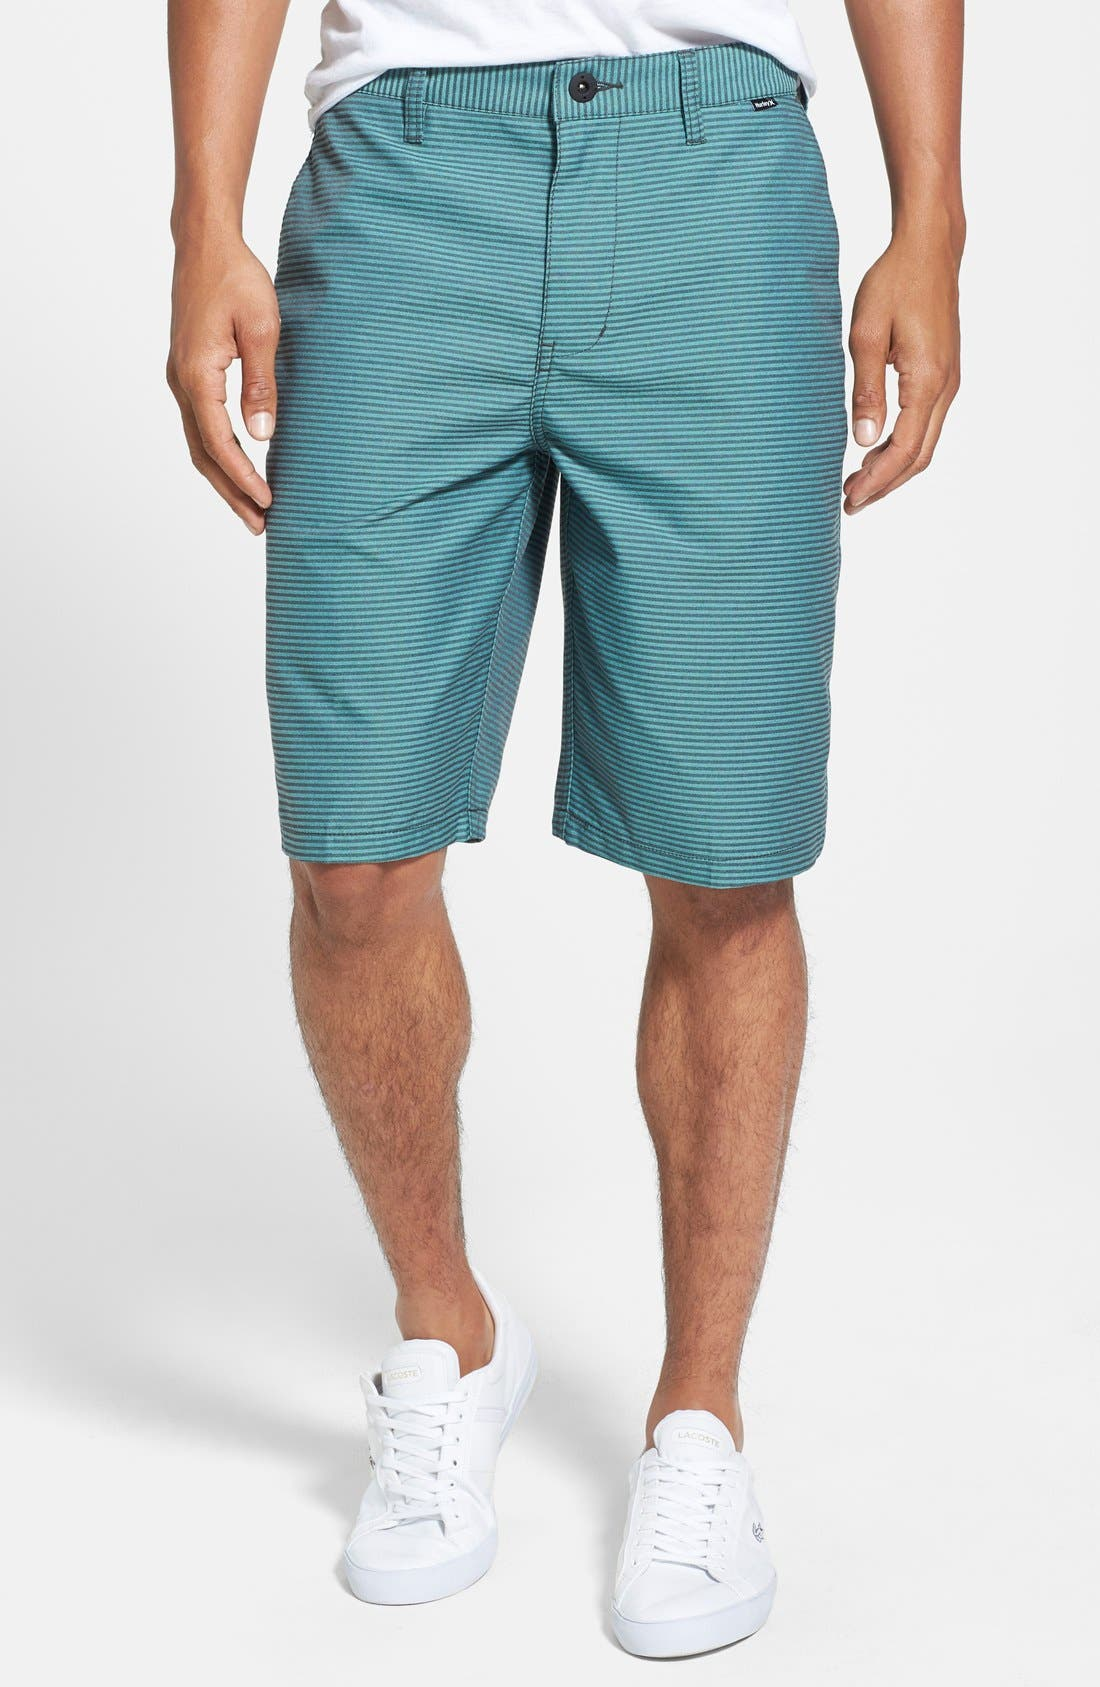 Main Image - Hurley 'Hickory' Herringbone Dri-FIT Shorts